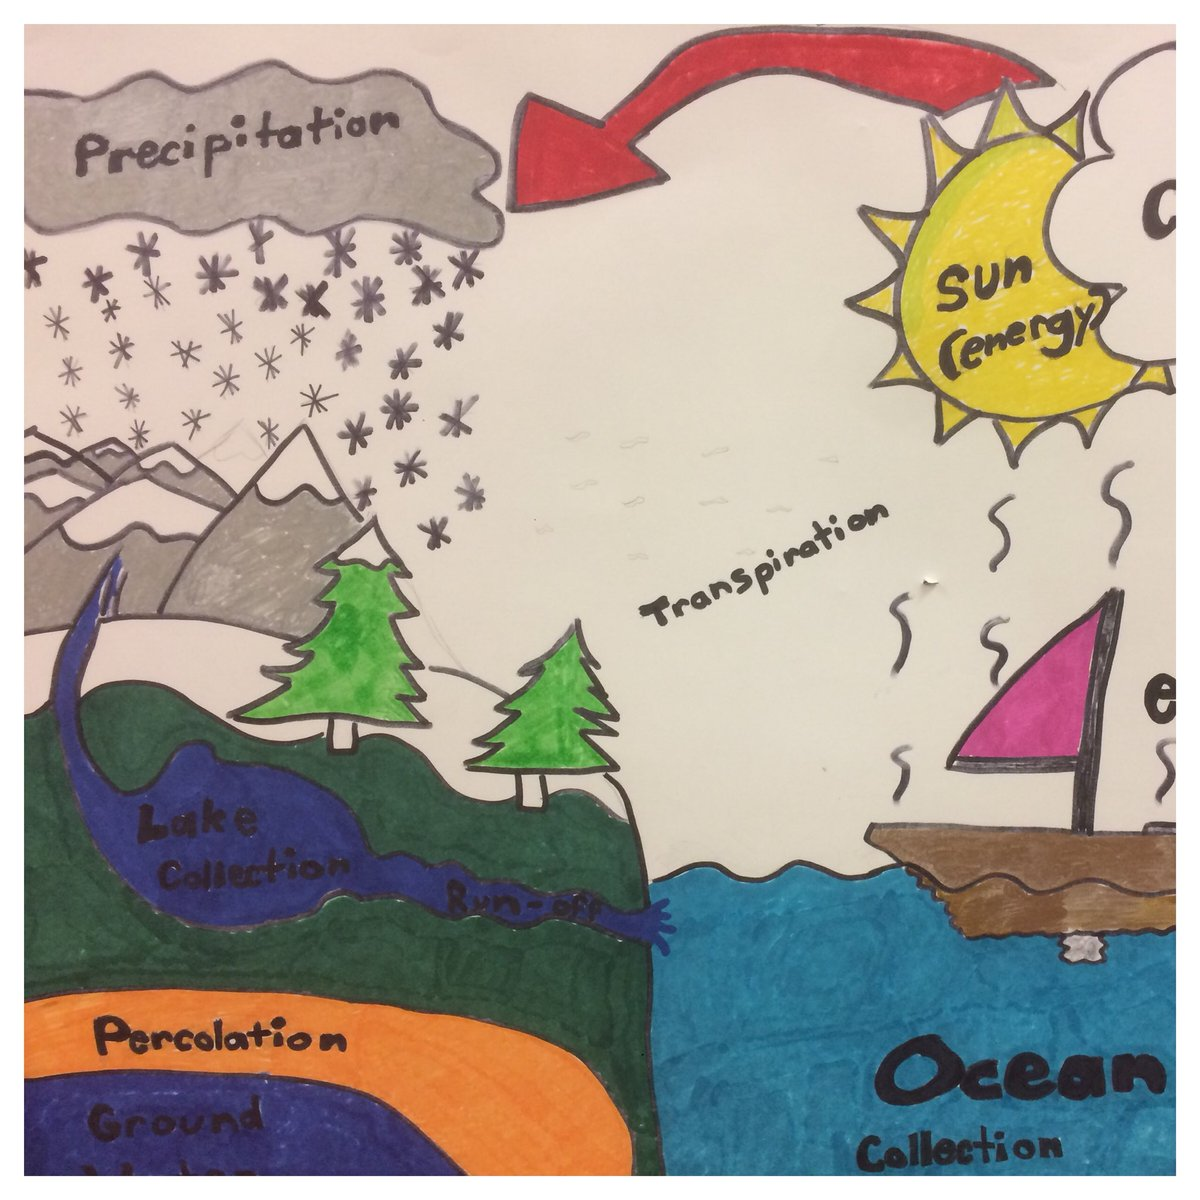 hight resolution of 7th grade water cycle posters excellent communication craftsmanship cmsrocks watercycle gosharkspic twitter com v3buf9qp5u